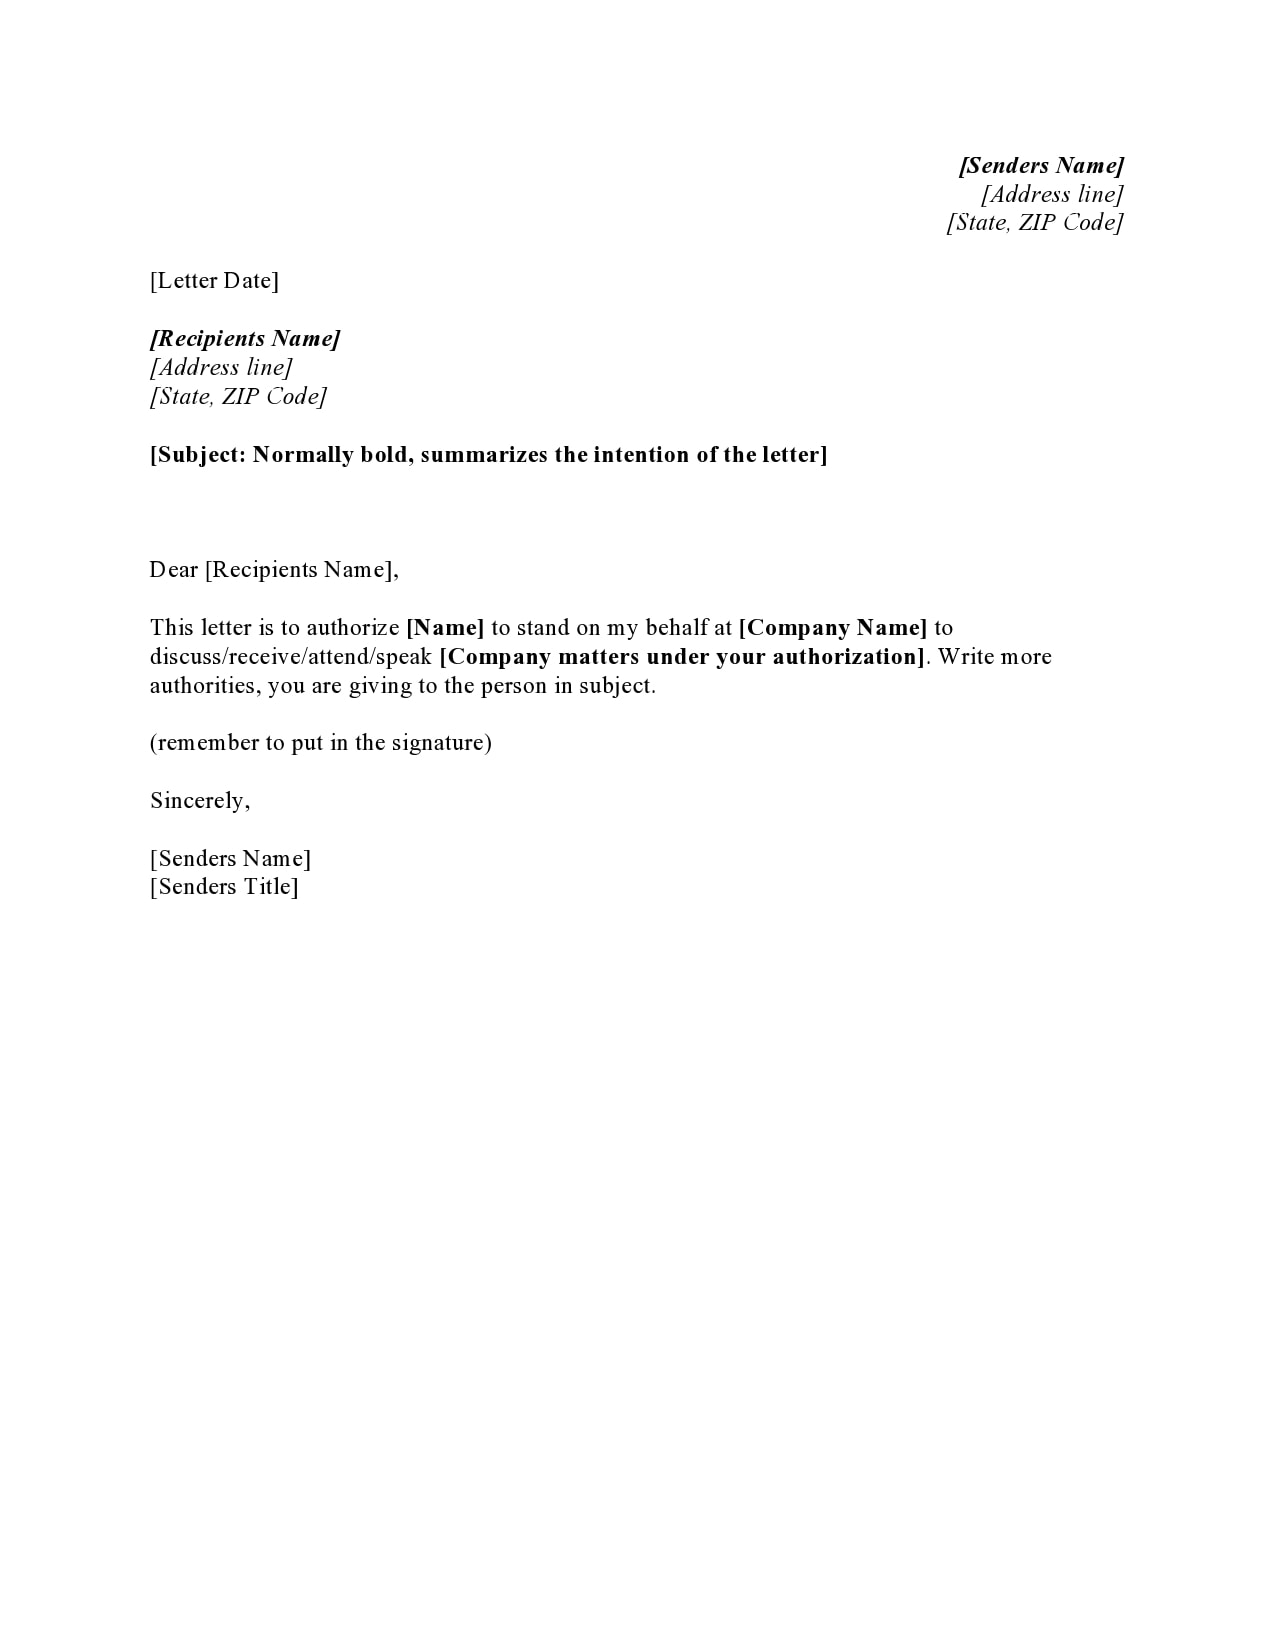 Letter Giving Permission To Act On My Behalf For Child from templatearchive.com